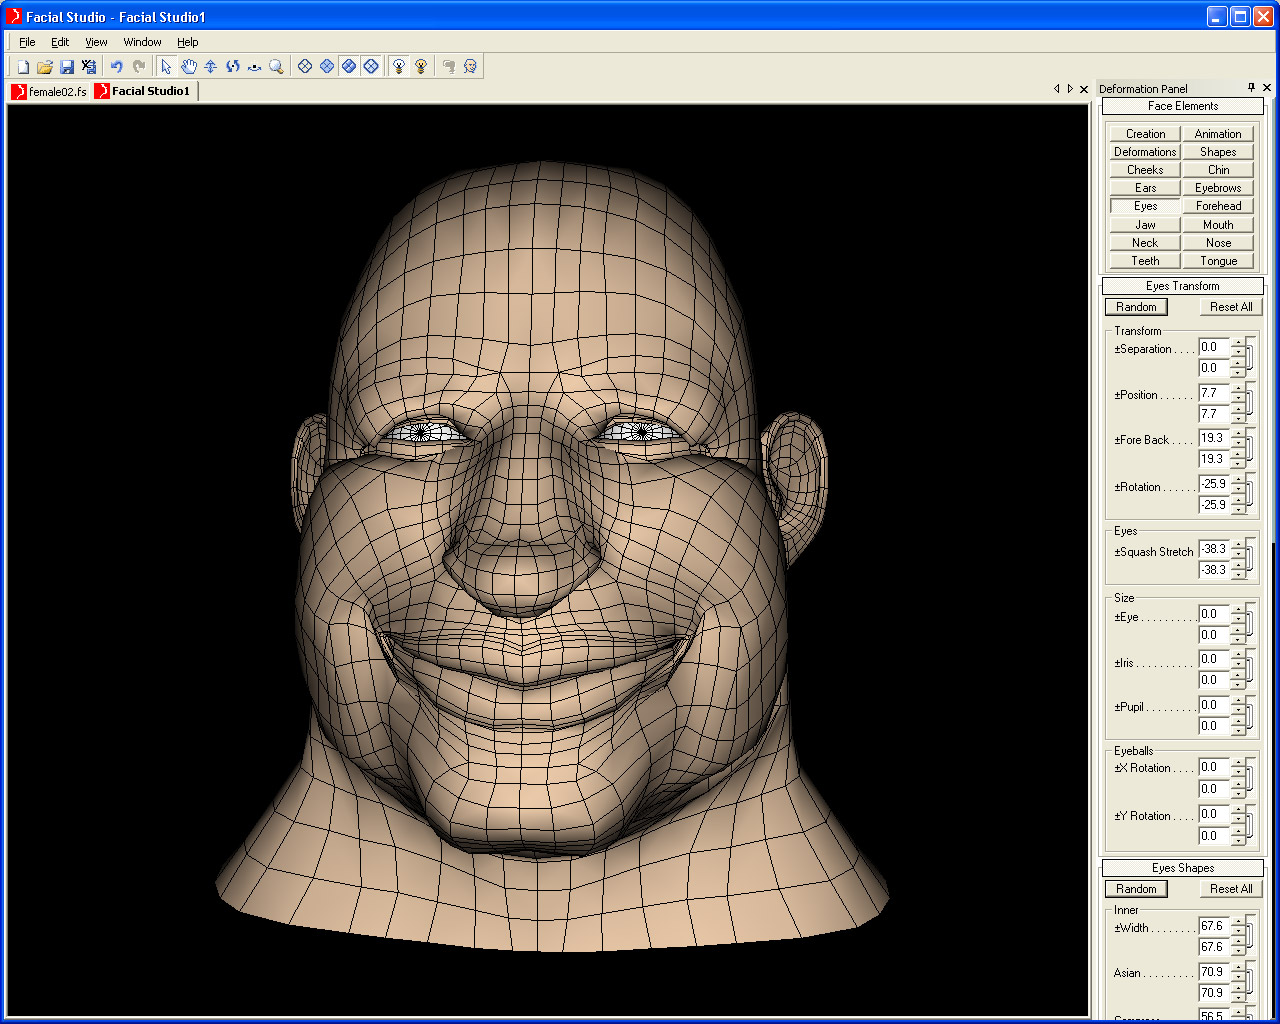 Facial Studio for Windows - Downloadcom